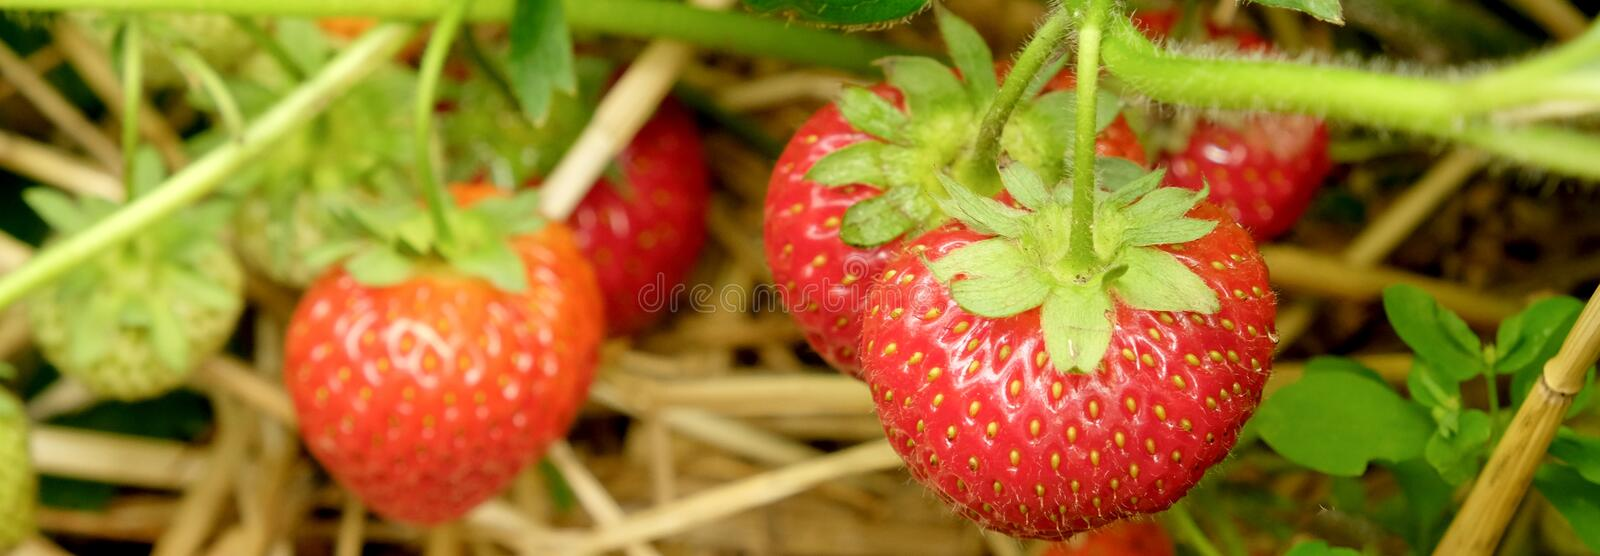 Five strawberry growing in a strawberry patch royalty free stock photo